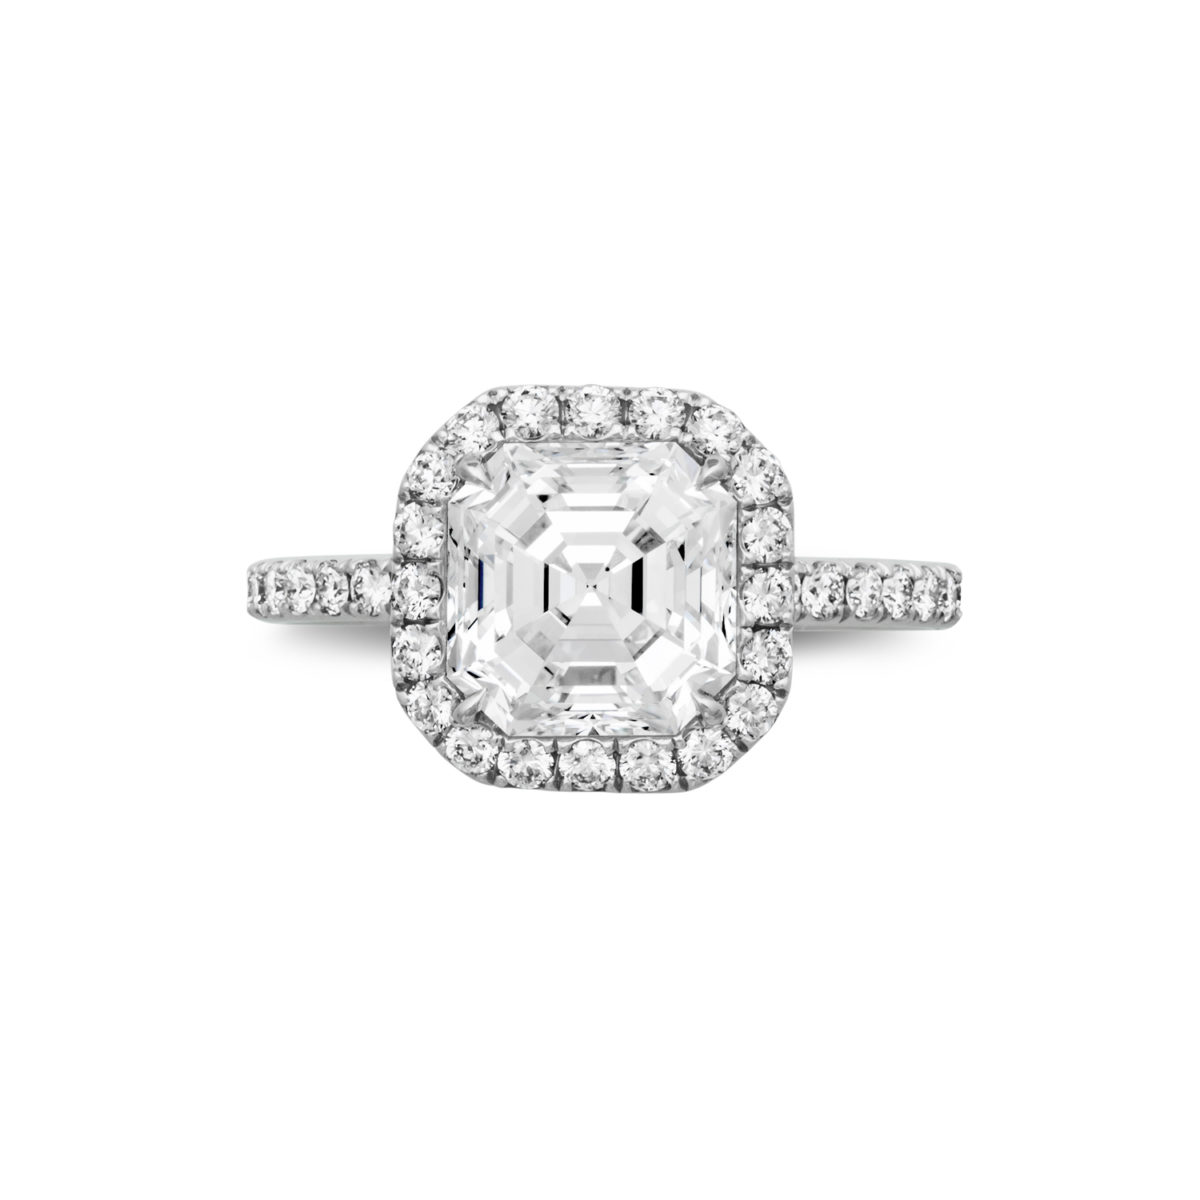 scale boodles asscher subsampling false crop the cut eternal product ring zoom diamond shop engagement rings upscale